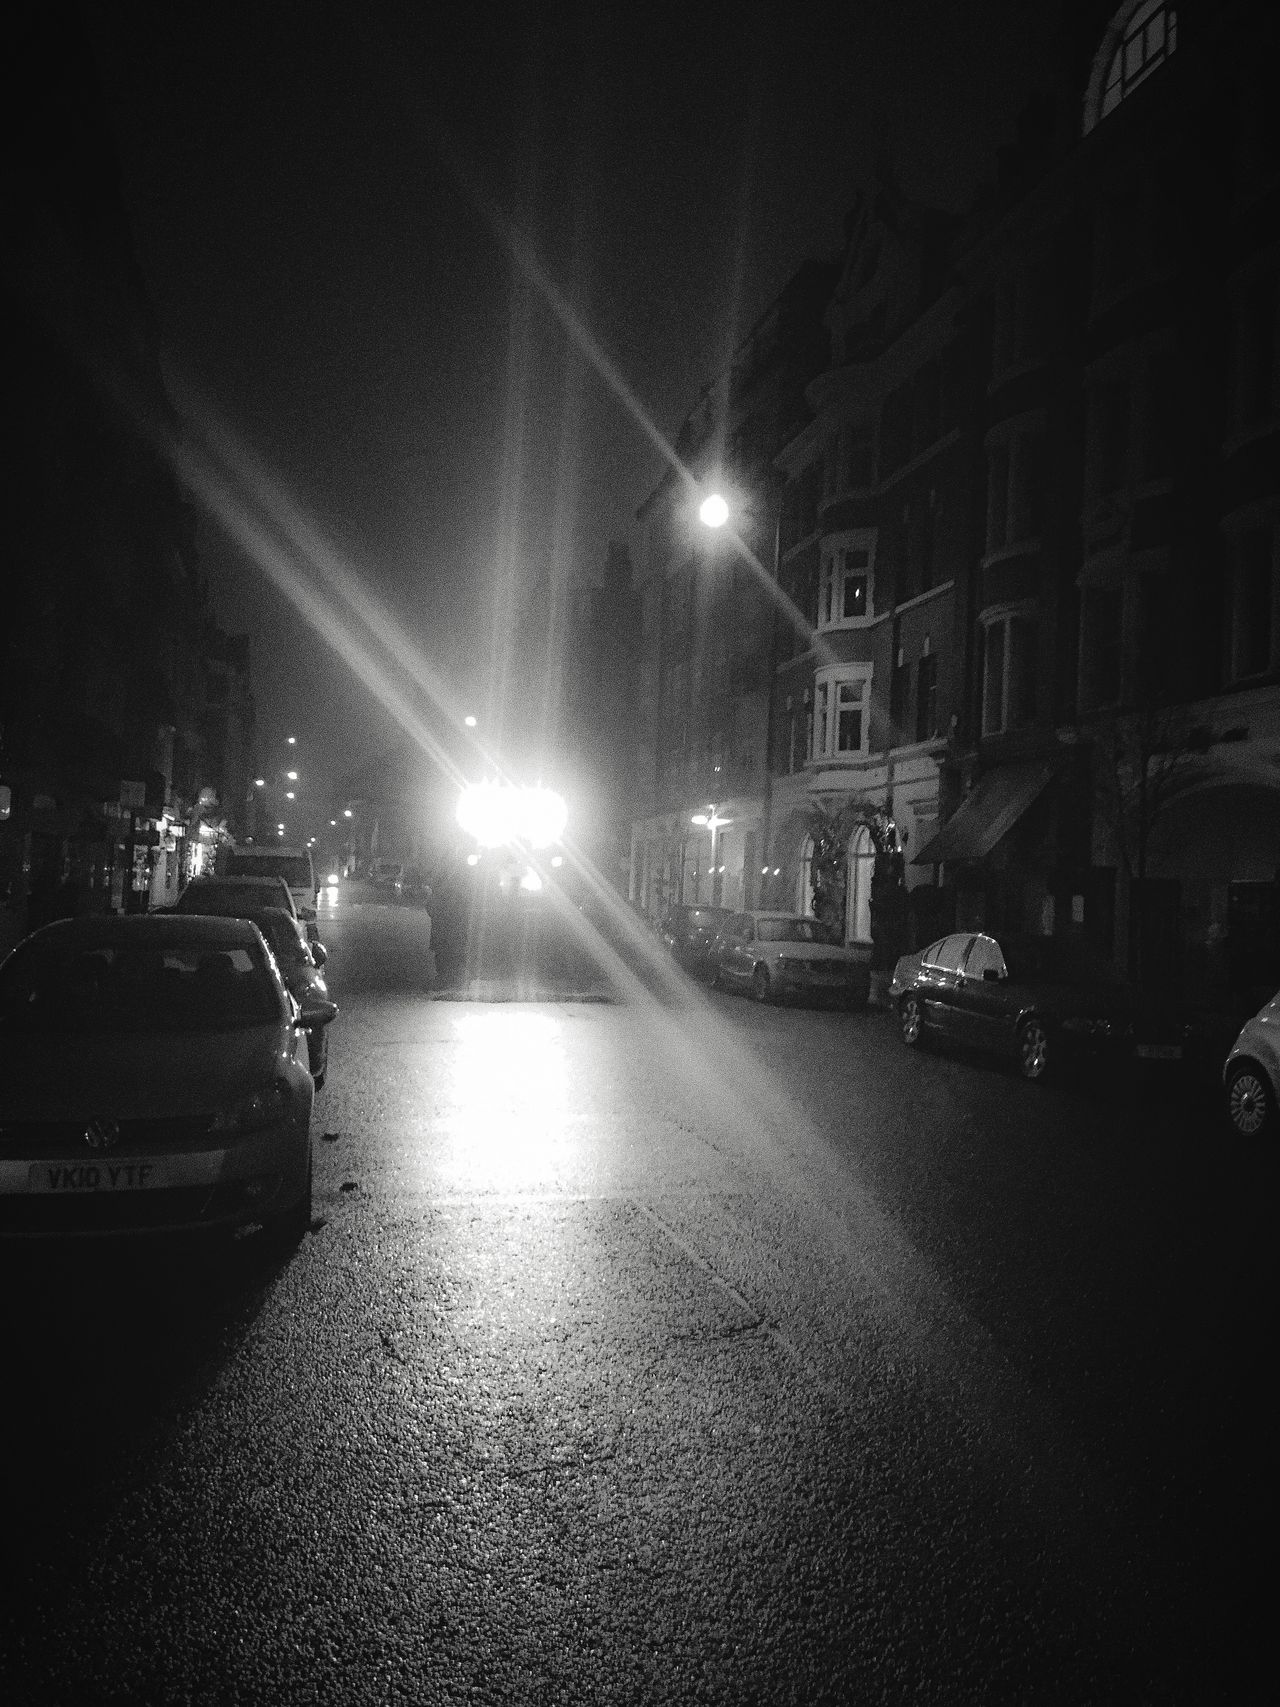 Street Photography Big Tractor Speeding Central London Street Light Illuminated Dark Street City EyeEm Best Shots Street Light Cold Temperature Vanishing Point 4am Blackandwhite EyeEm Best Shots - The Streets The Week Of Eyeem Fresh On Eyeem  Urban Exploration Streetphotography Headlights Night Architecture Residential District Misty